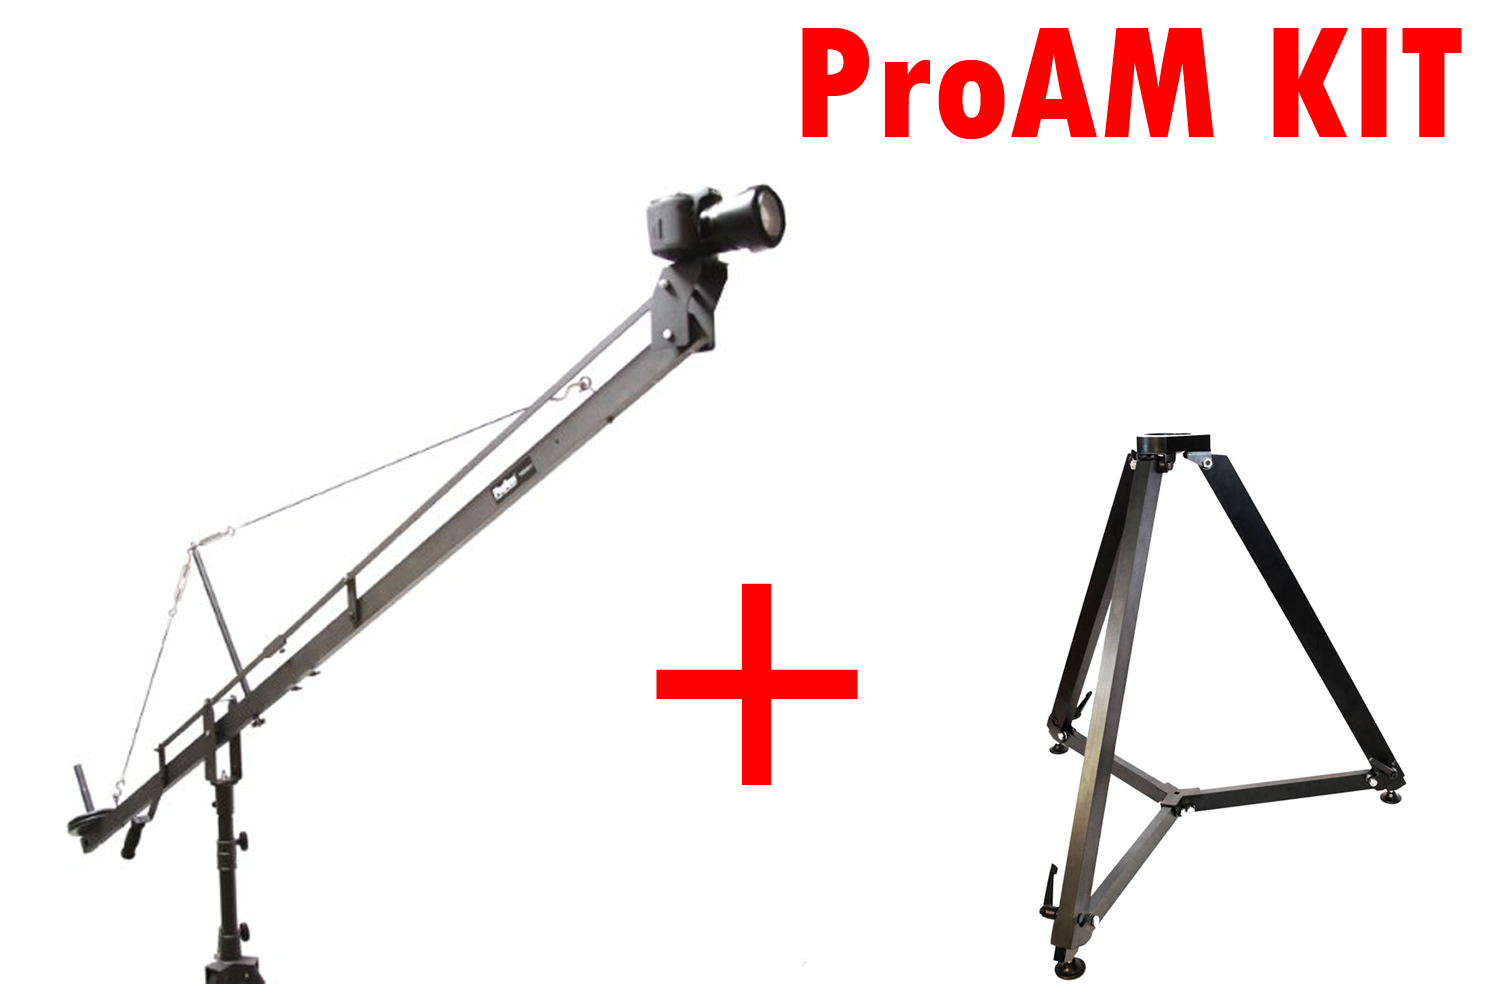 ProAm KIT ORION DVC 500 (DVC500) CRANE 3.6 M + Super Heavy-Duty Stand